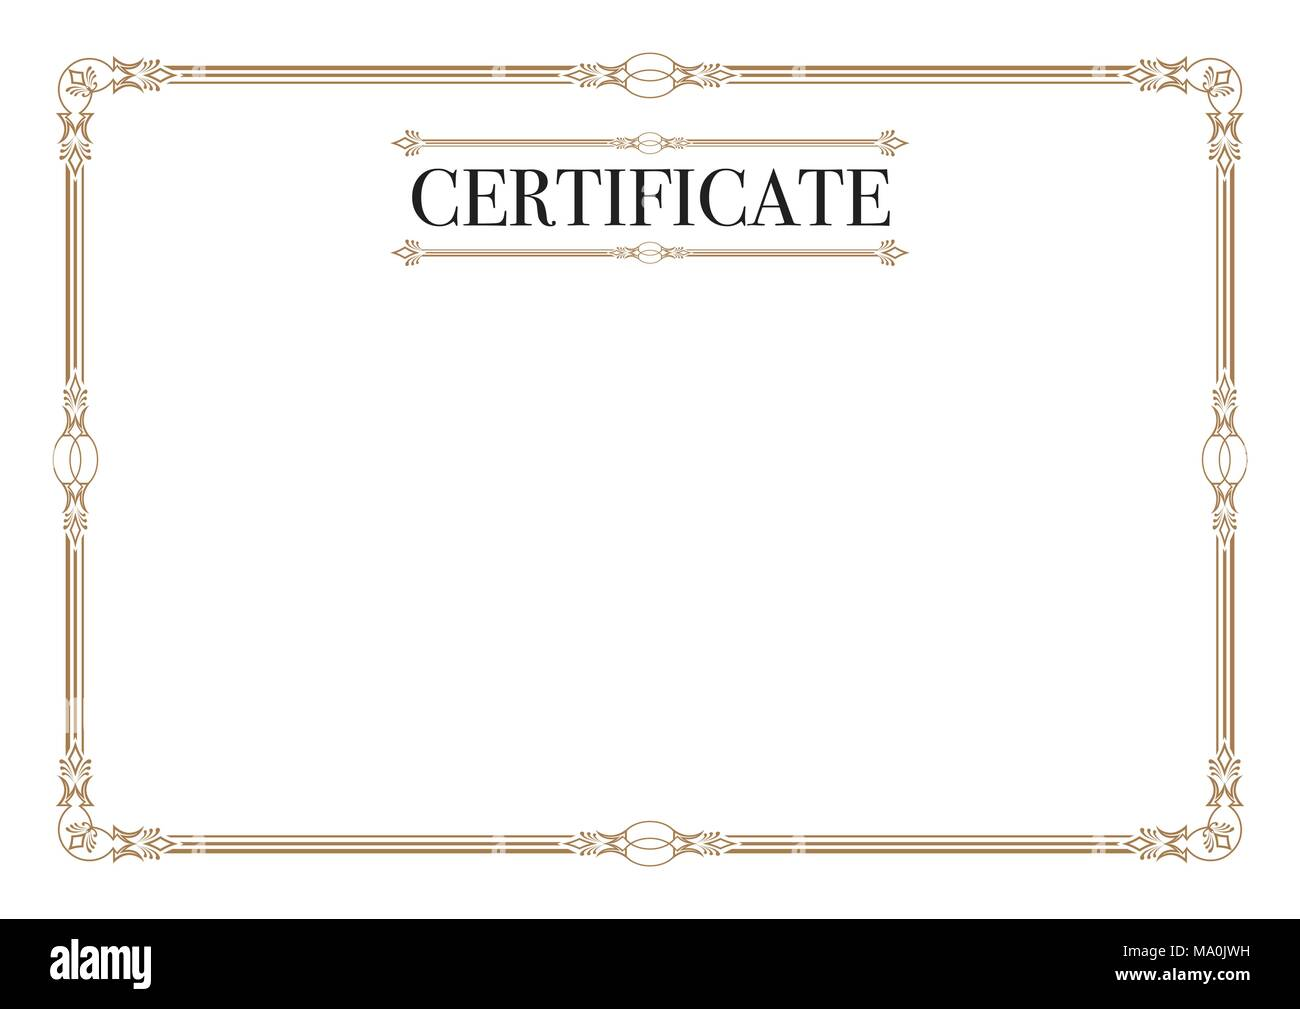 Certificate Border for Excellence Performance - Stock Image